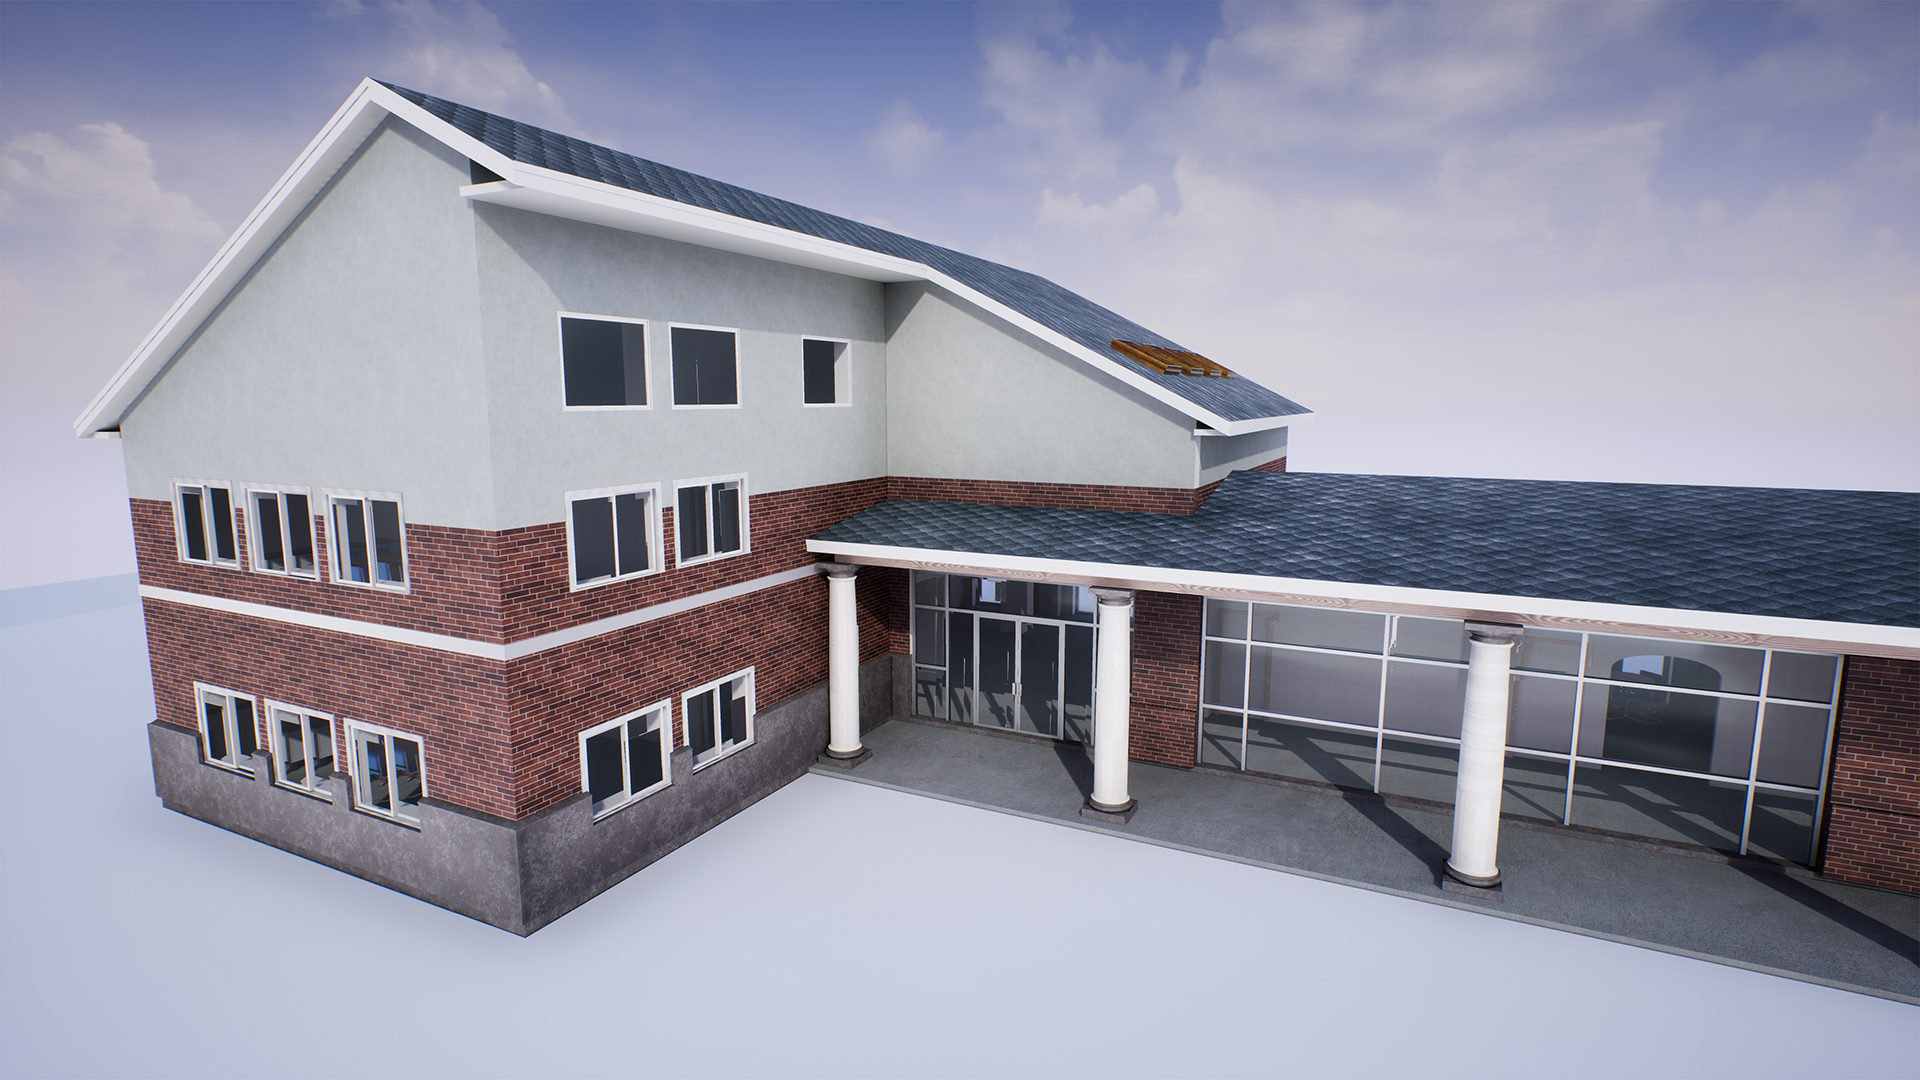 Revit FBX UE4 import